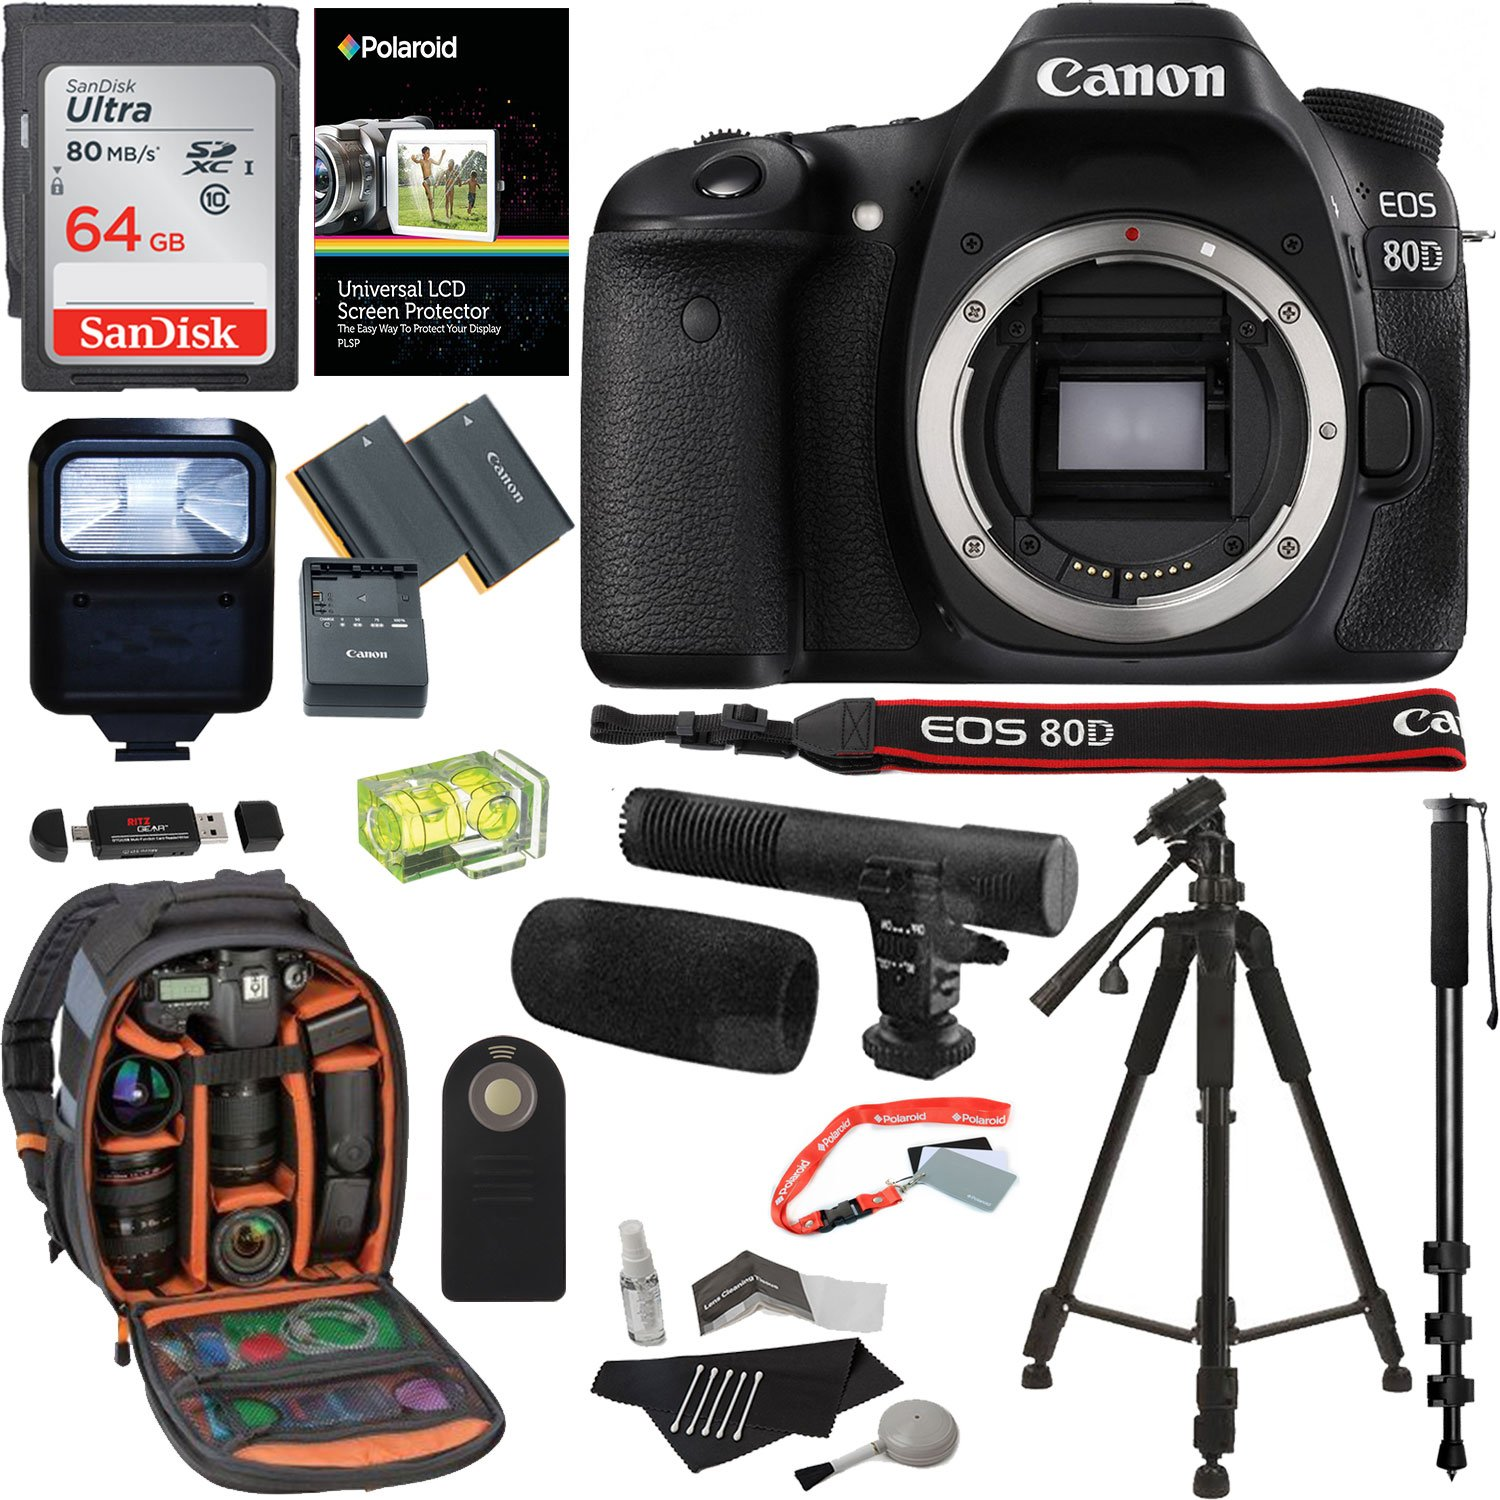 Amazon Canon EOS 80D Digital SLR Camera Body 64GB Memory Card